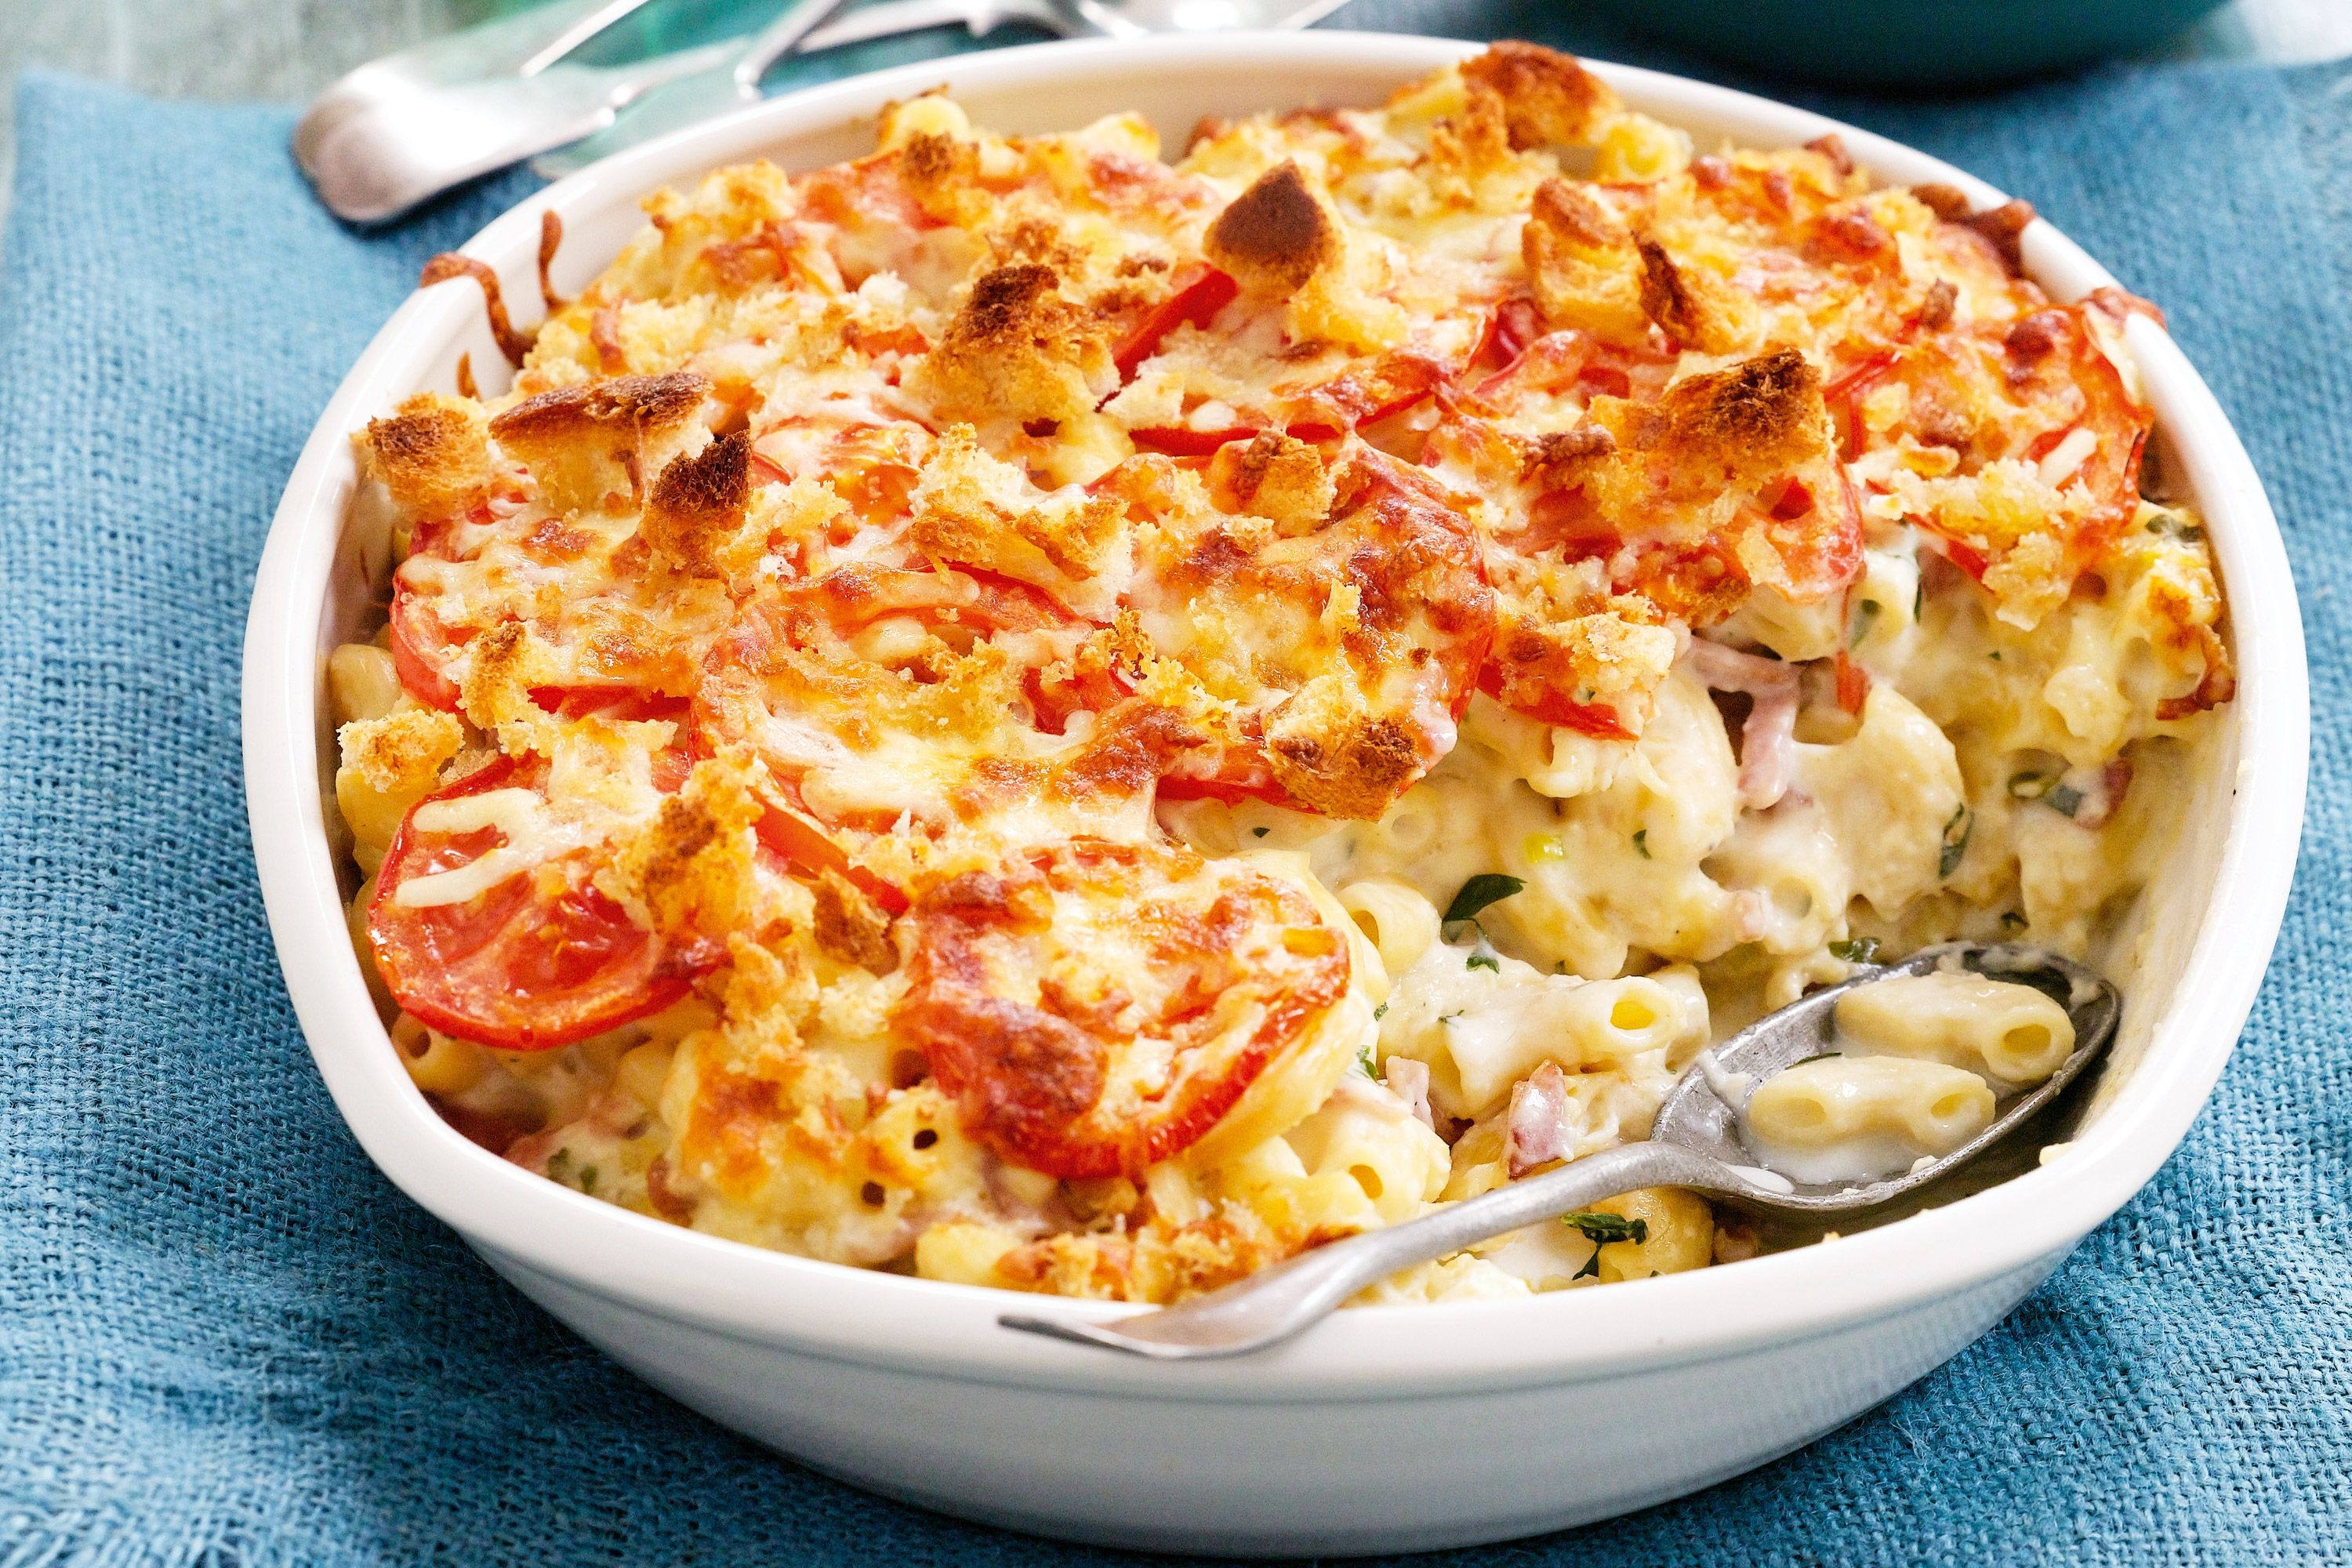 Canada consumes more cheese and macaroni than any other country in the world.